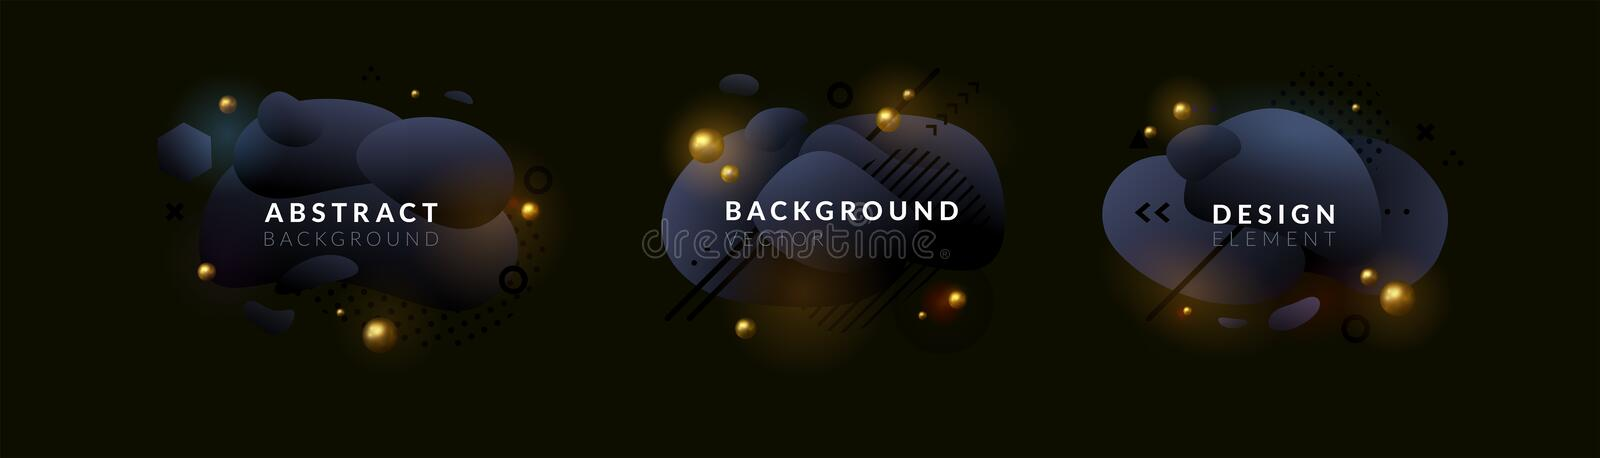 Set of abstract vector graphics elements, banners design collection. Dark gradient fluid shapes. Black and white with royalty free illustration